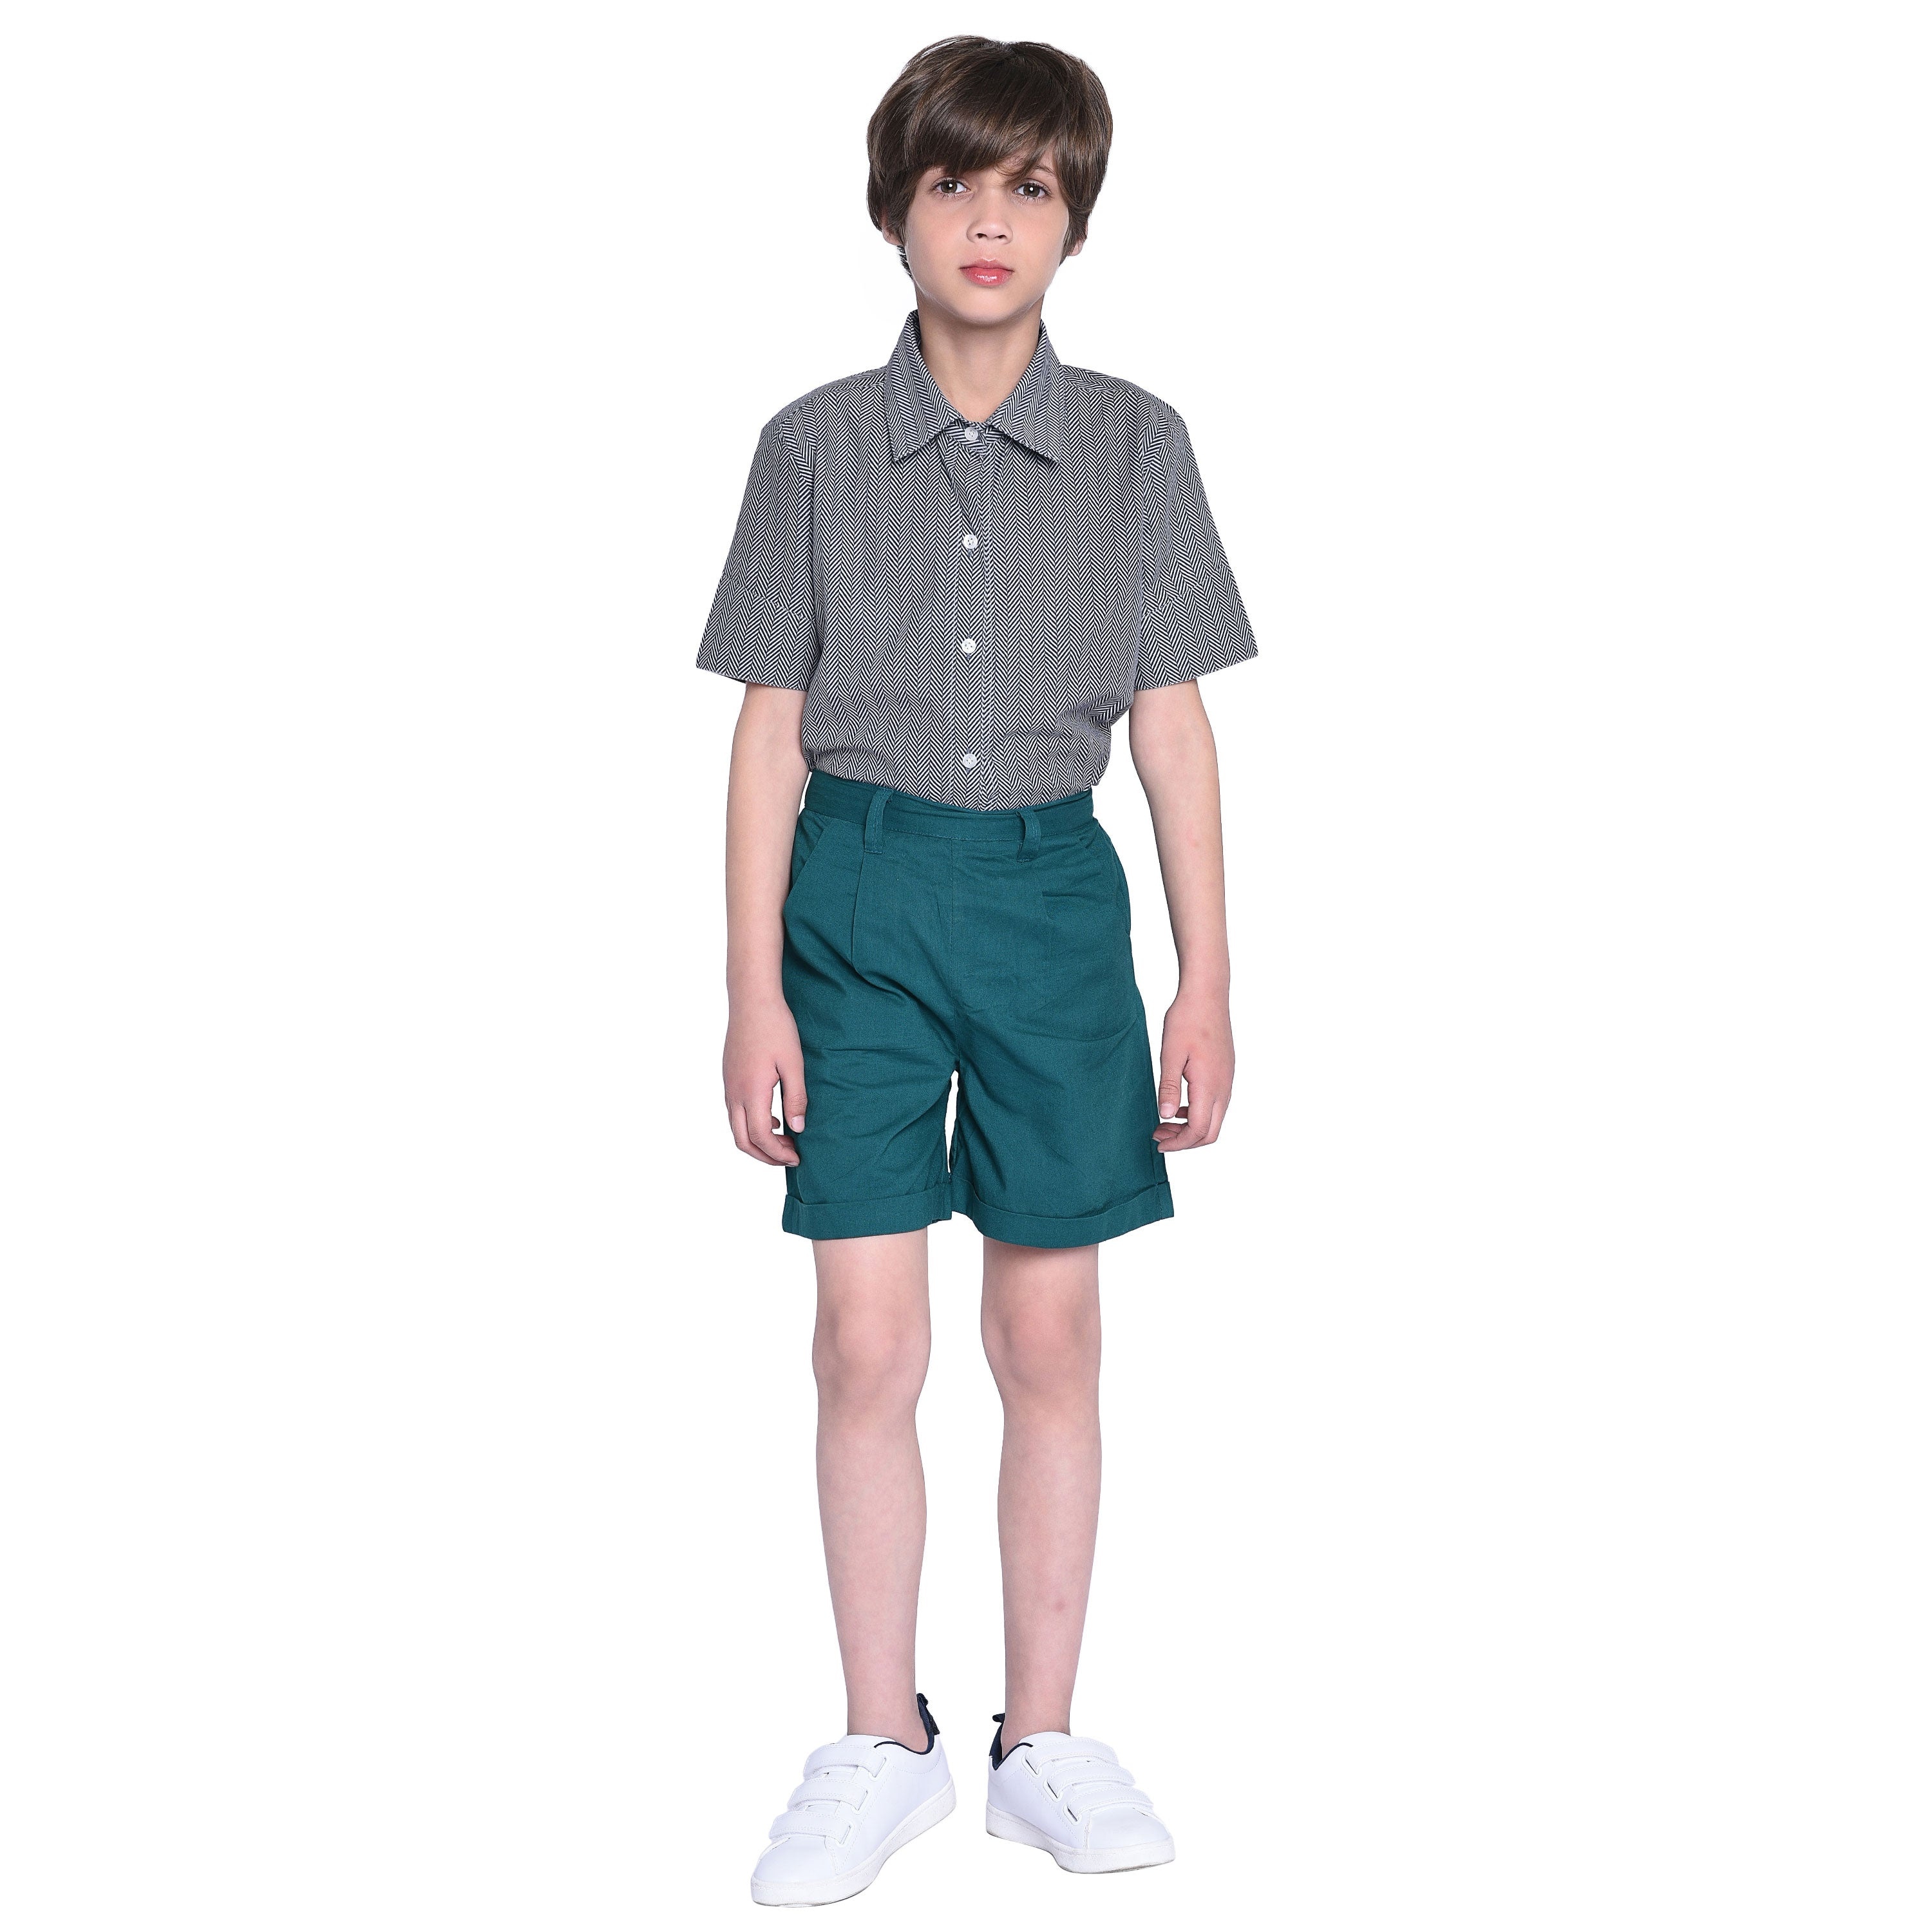 Luke Shirt & Chino Short Set for Boys